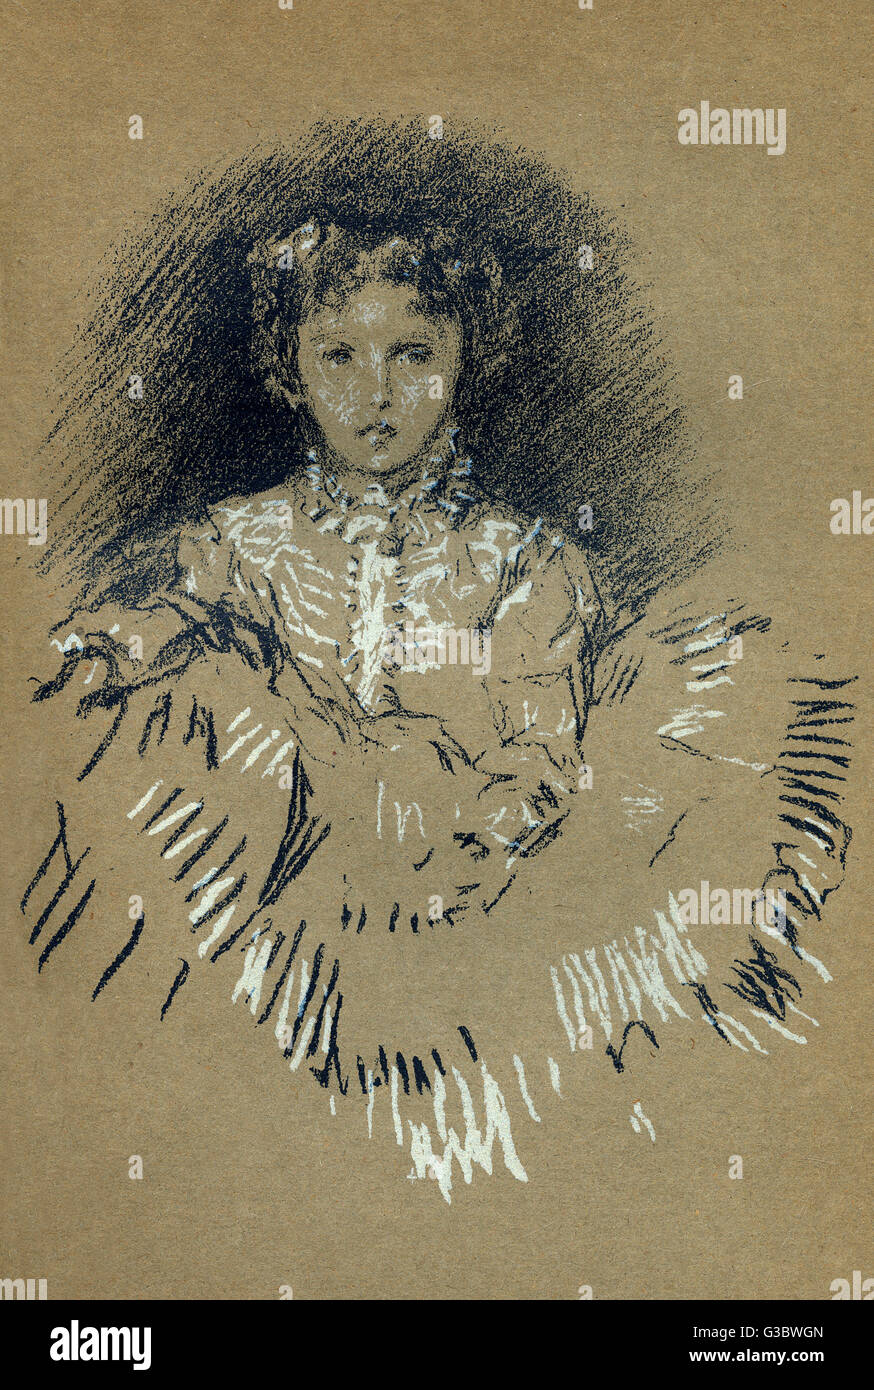 A pastel study for a portrait of 'Baby Leyland' by James Abbott McNeill Whistler (1834-1903).     Date: - Stock Image